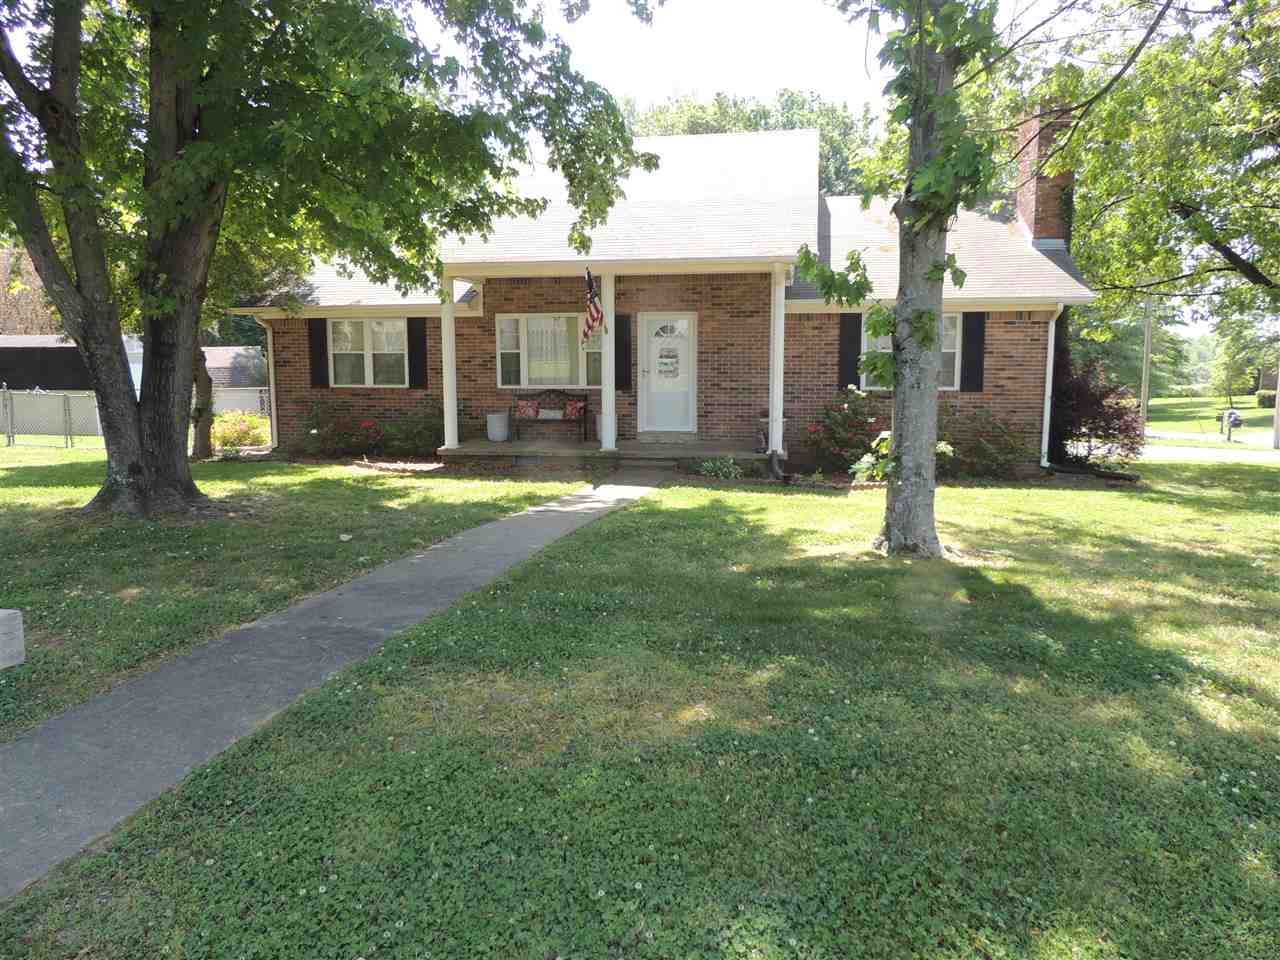 825 Nora Ave,Newbern,Tennessee 38059,4 Bedrooms Bedrooms,2 BathroomsBathrooms,Residential,825 Nora Ave,182778